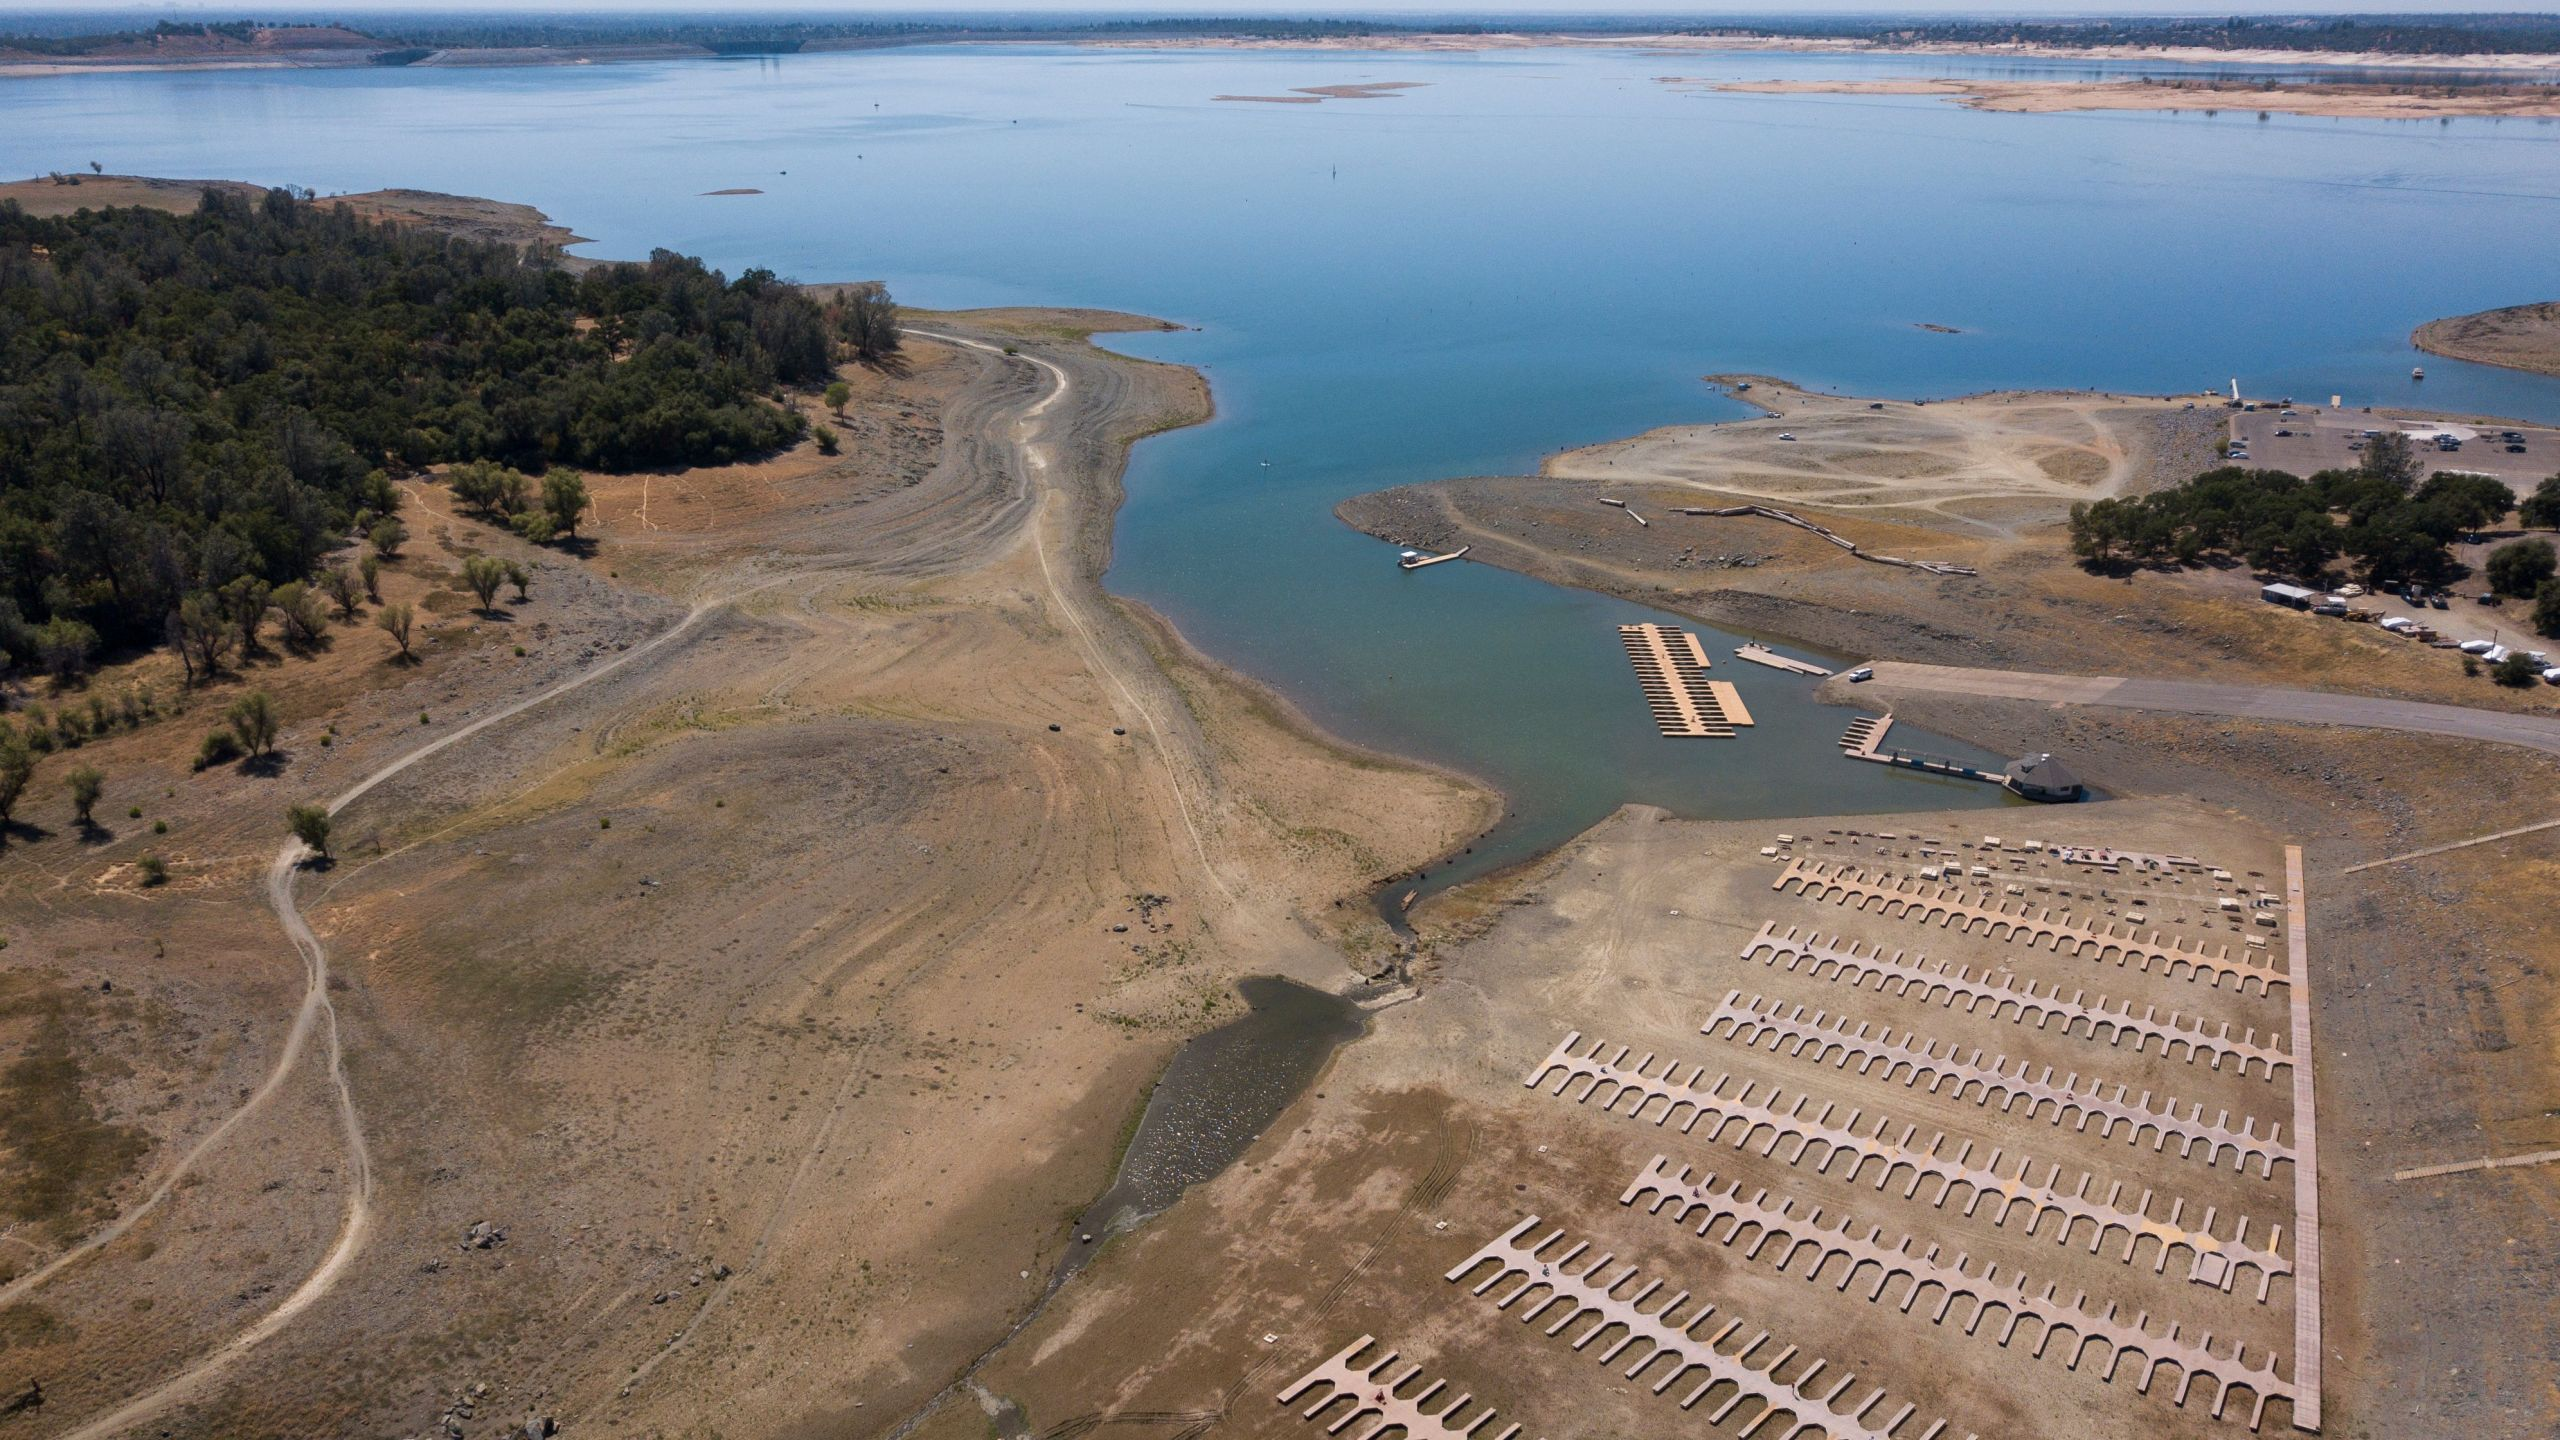 This aerial image shows empty boat slips sitting on a dry lake bed at Folsom Lake Marina as the lake experiences lower water levels during the California drought emergency on May 27, 2021 in El Dorado Hills. ( PATRICK T. FALLON/AFP via Getty Images)